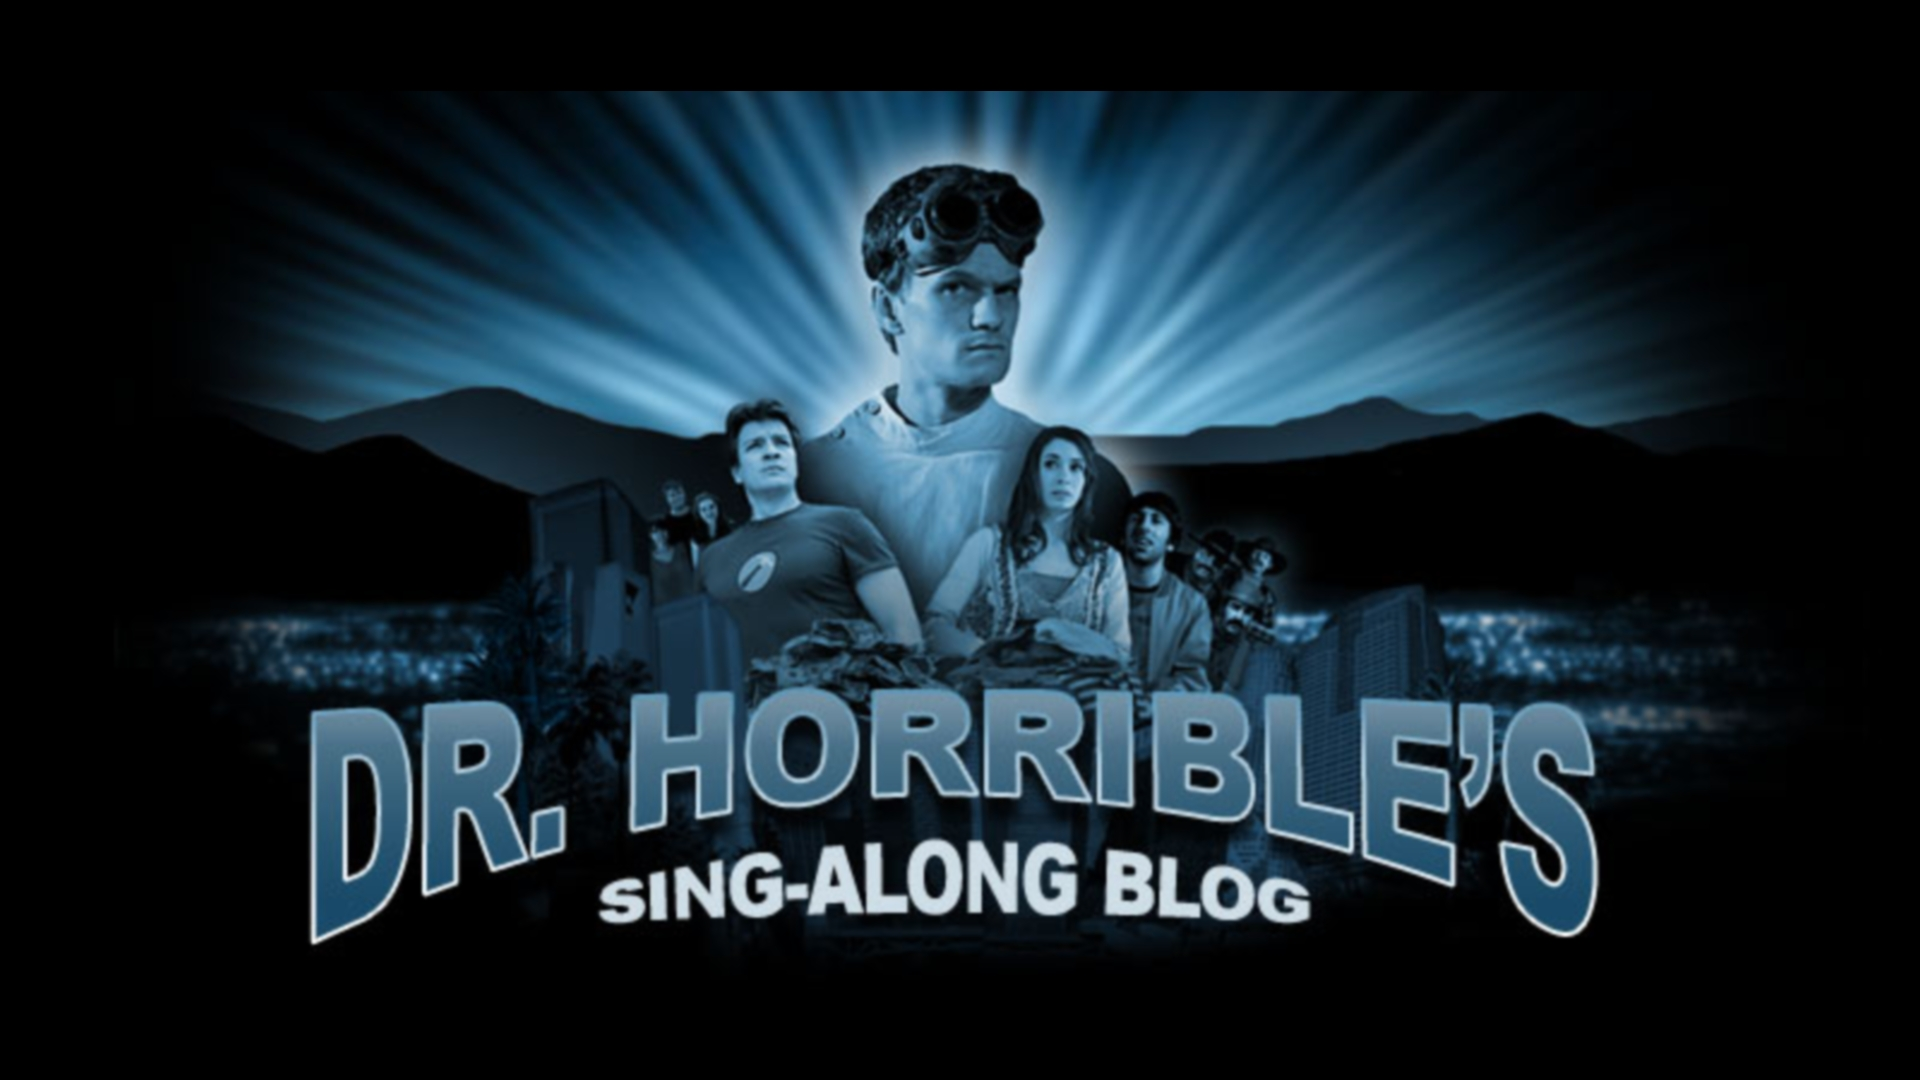 Dr. Horrible s Sing-Along Blog